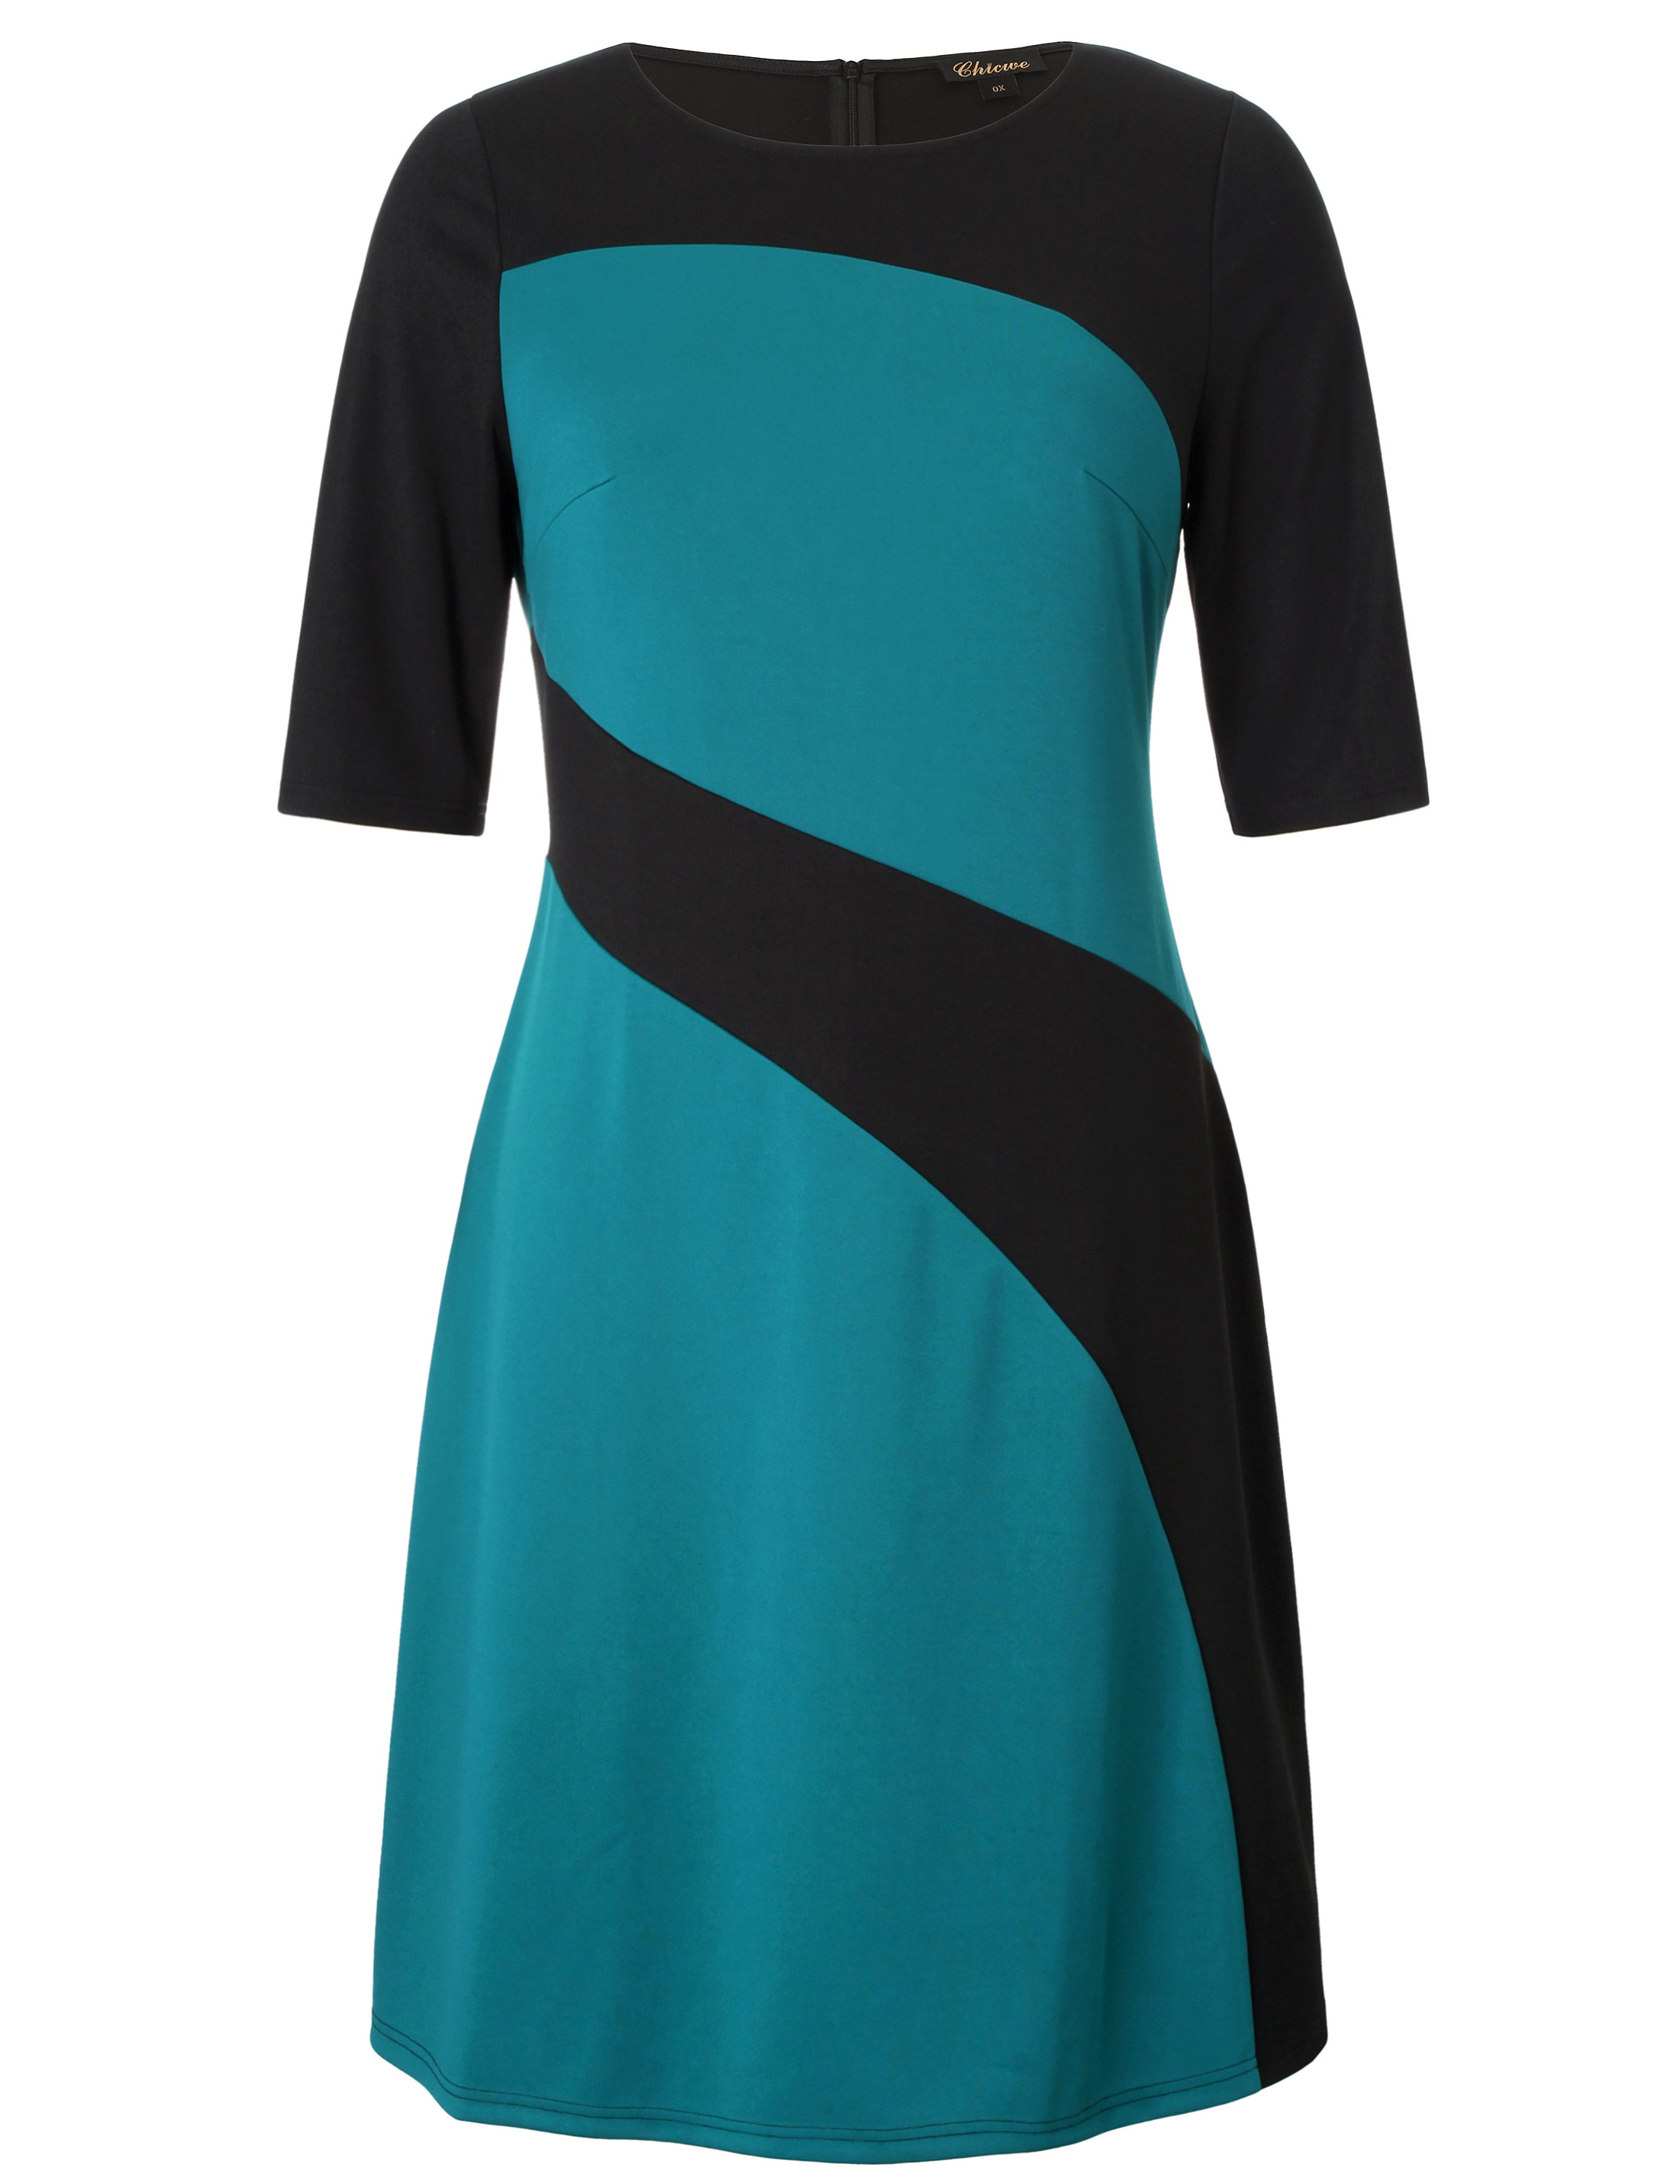 Aliexpress.com   Buy Chicwe Women s Plus Size Stylish Contrast Ponte Dress Large  Size Big Size 1X 4X from Reliable Dresses suppliers on Chicwe Official ... 95c6e0e832e4